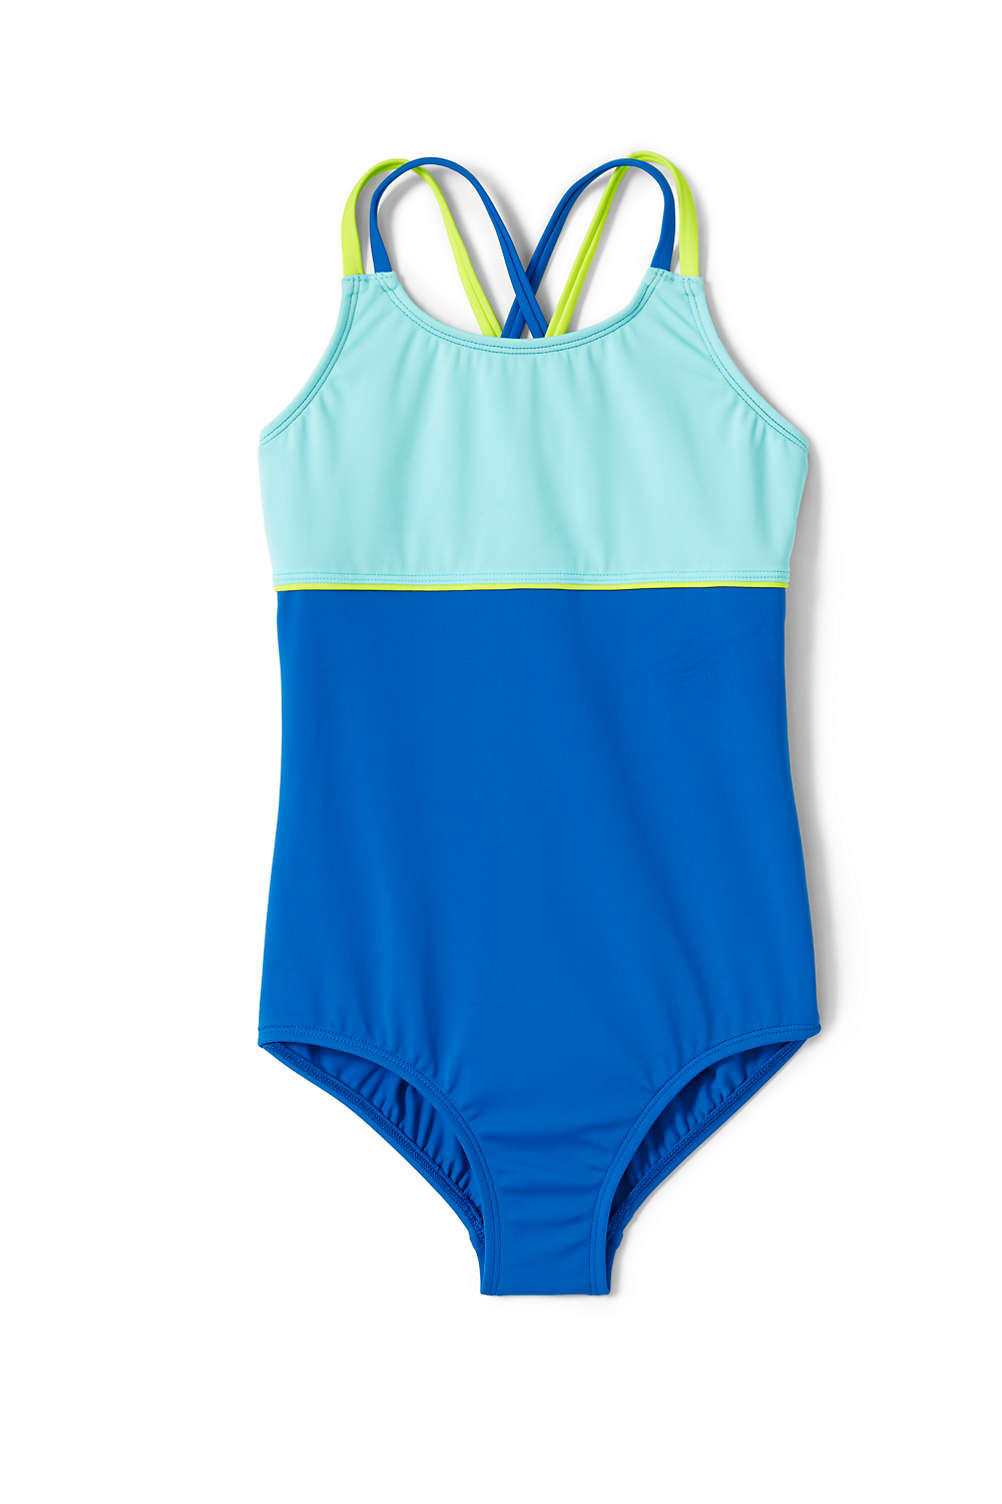 e34d910750138 Girls Cross Back Colorblock One Piece Swimsuit from Lands' End